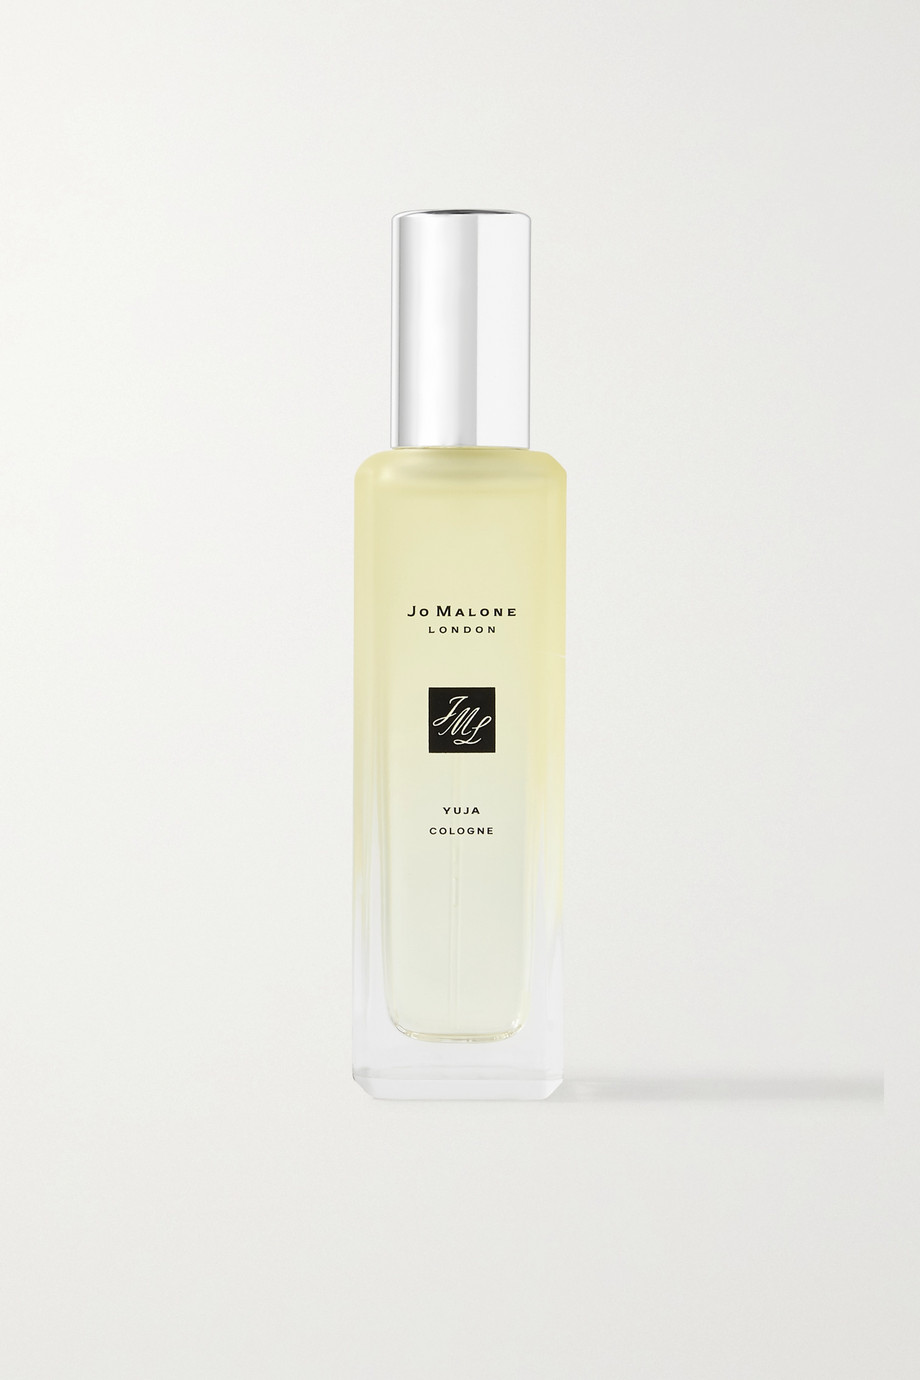 Jo Malone London Yuja cologne, 30ml